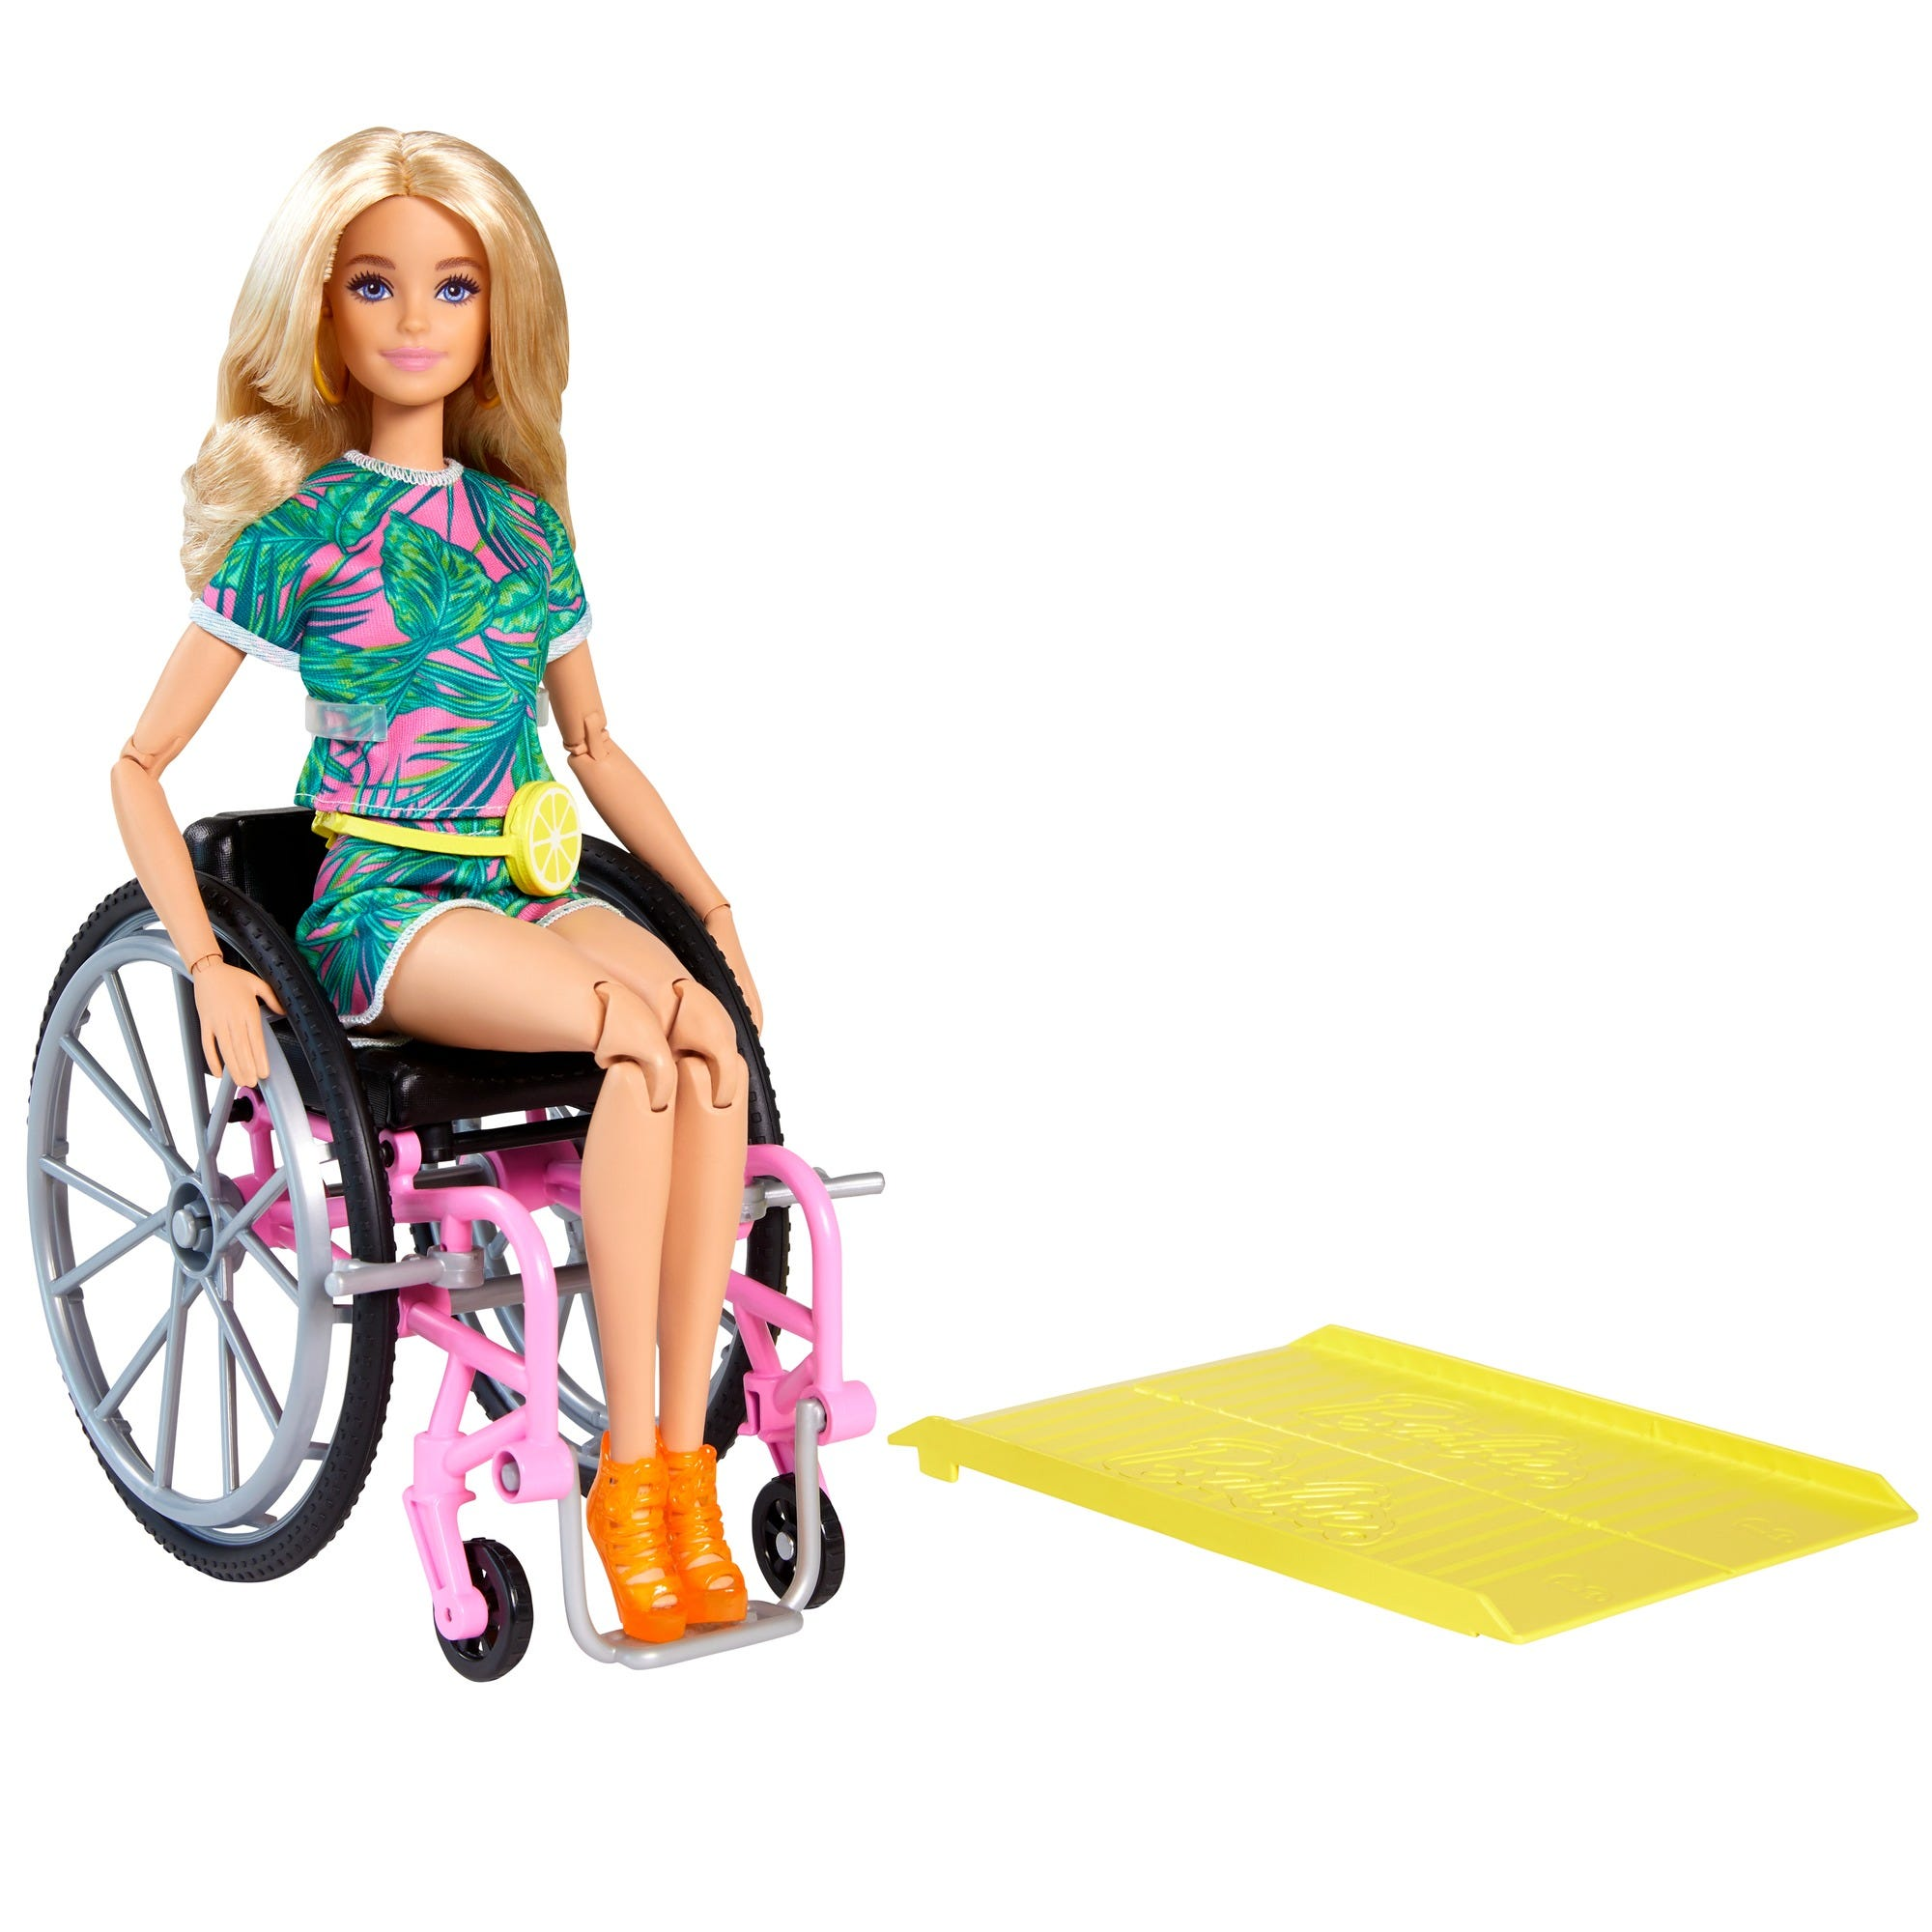 Barbie Doll with Wheelchair Accessory & Ramp